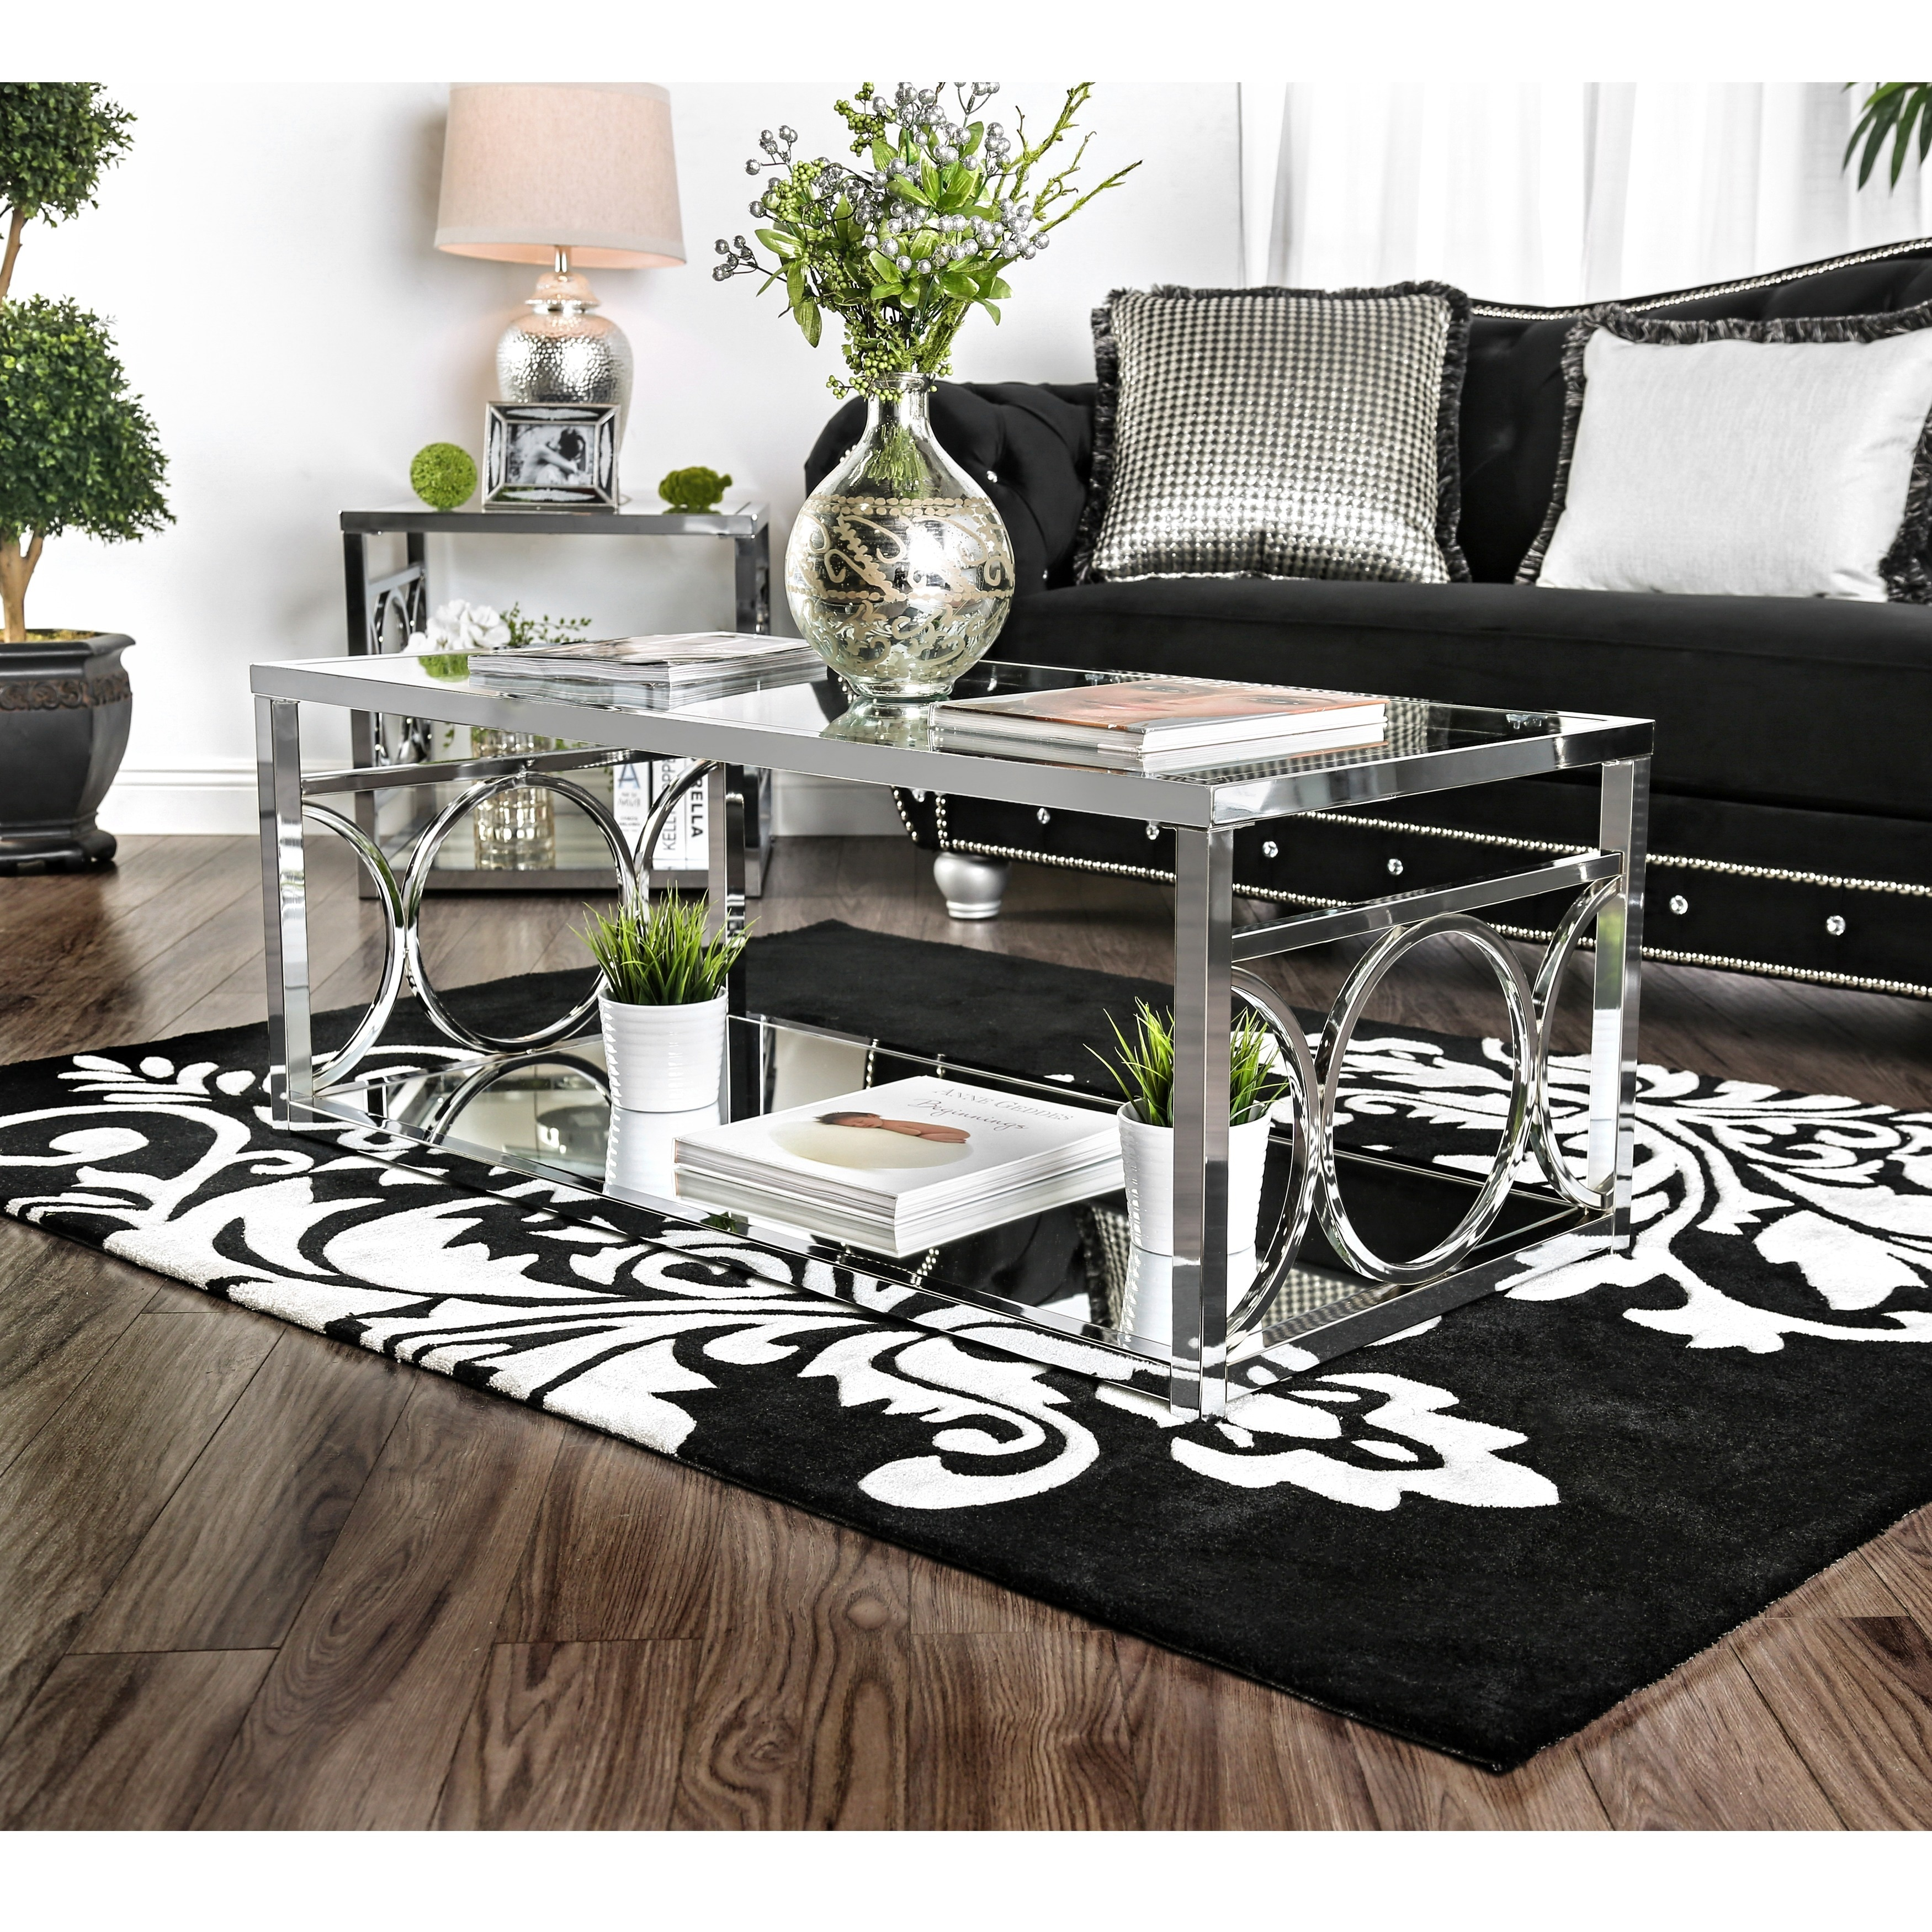 Shop furniture of america mishie contemporary 3 piece glass top accent table set free shipping today overstock com 11421622